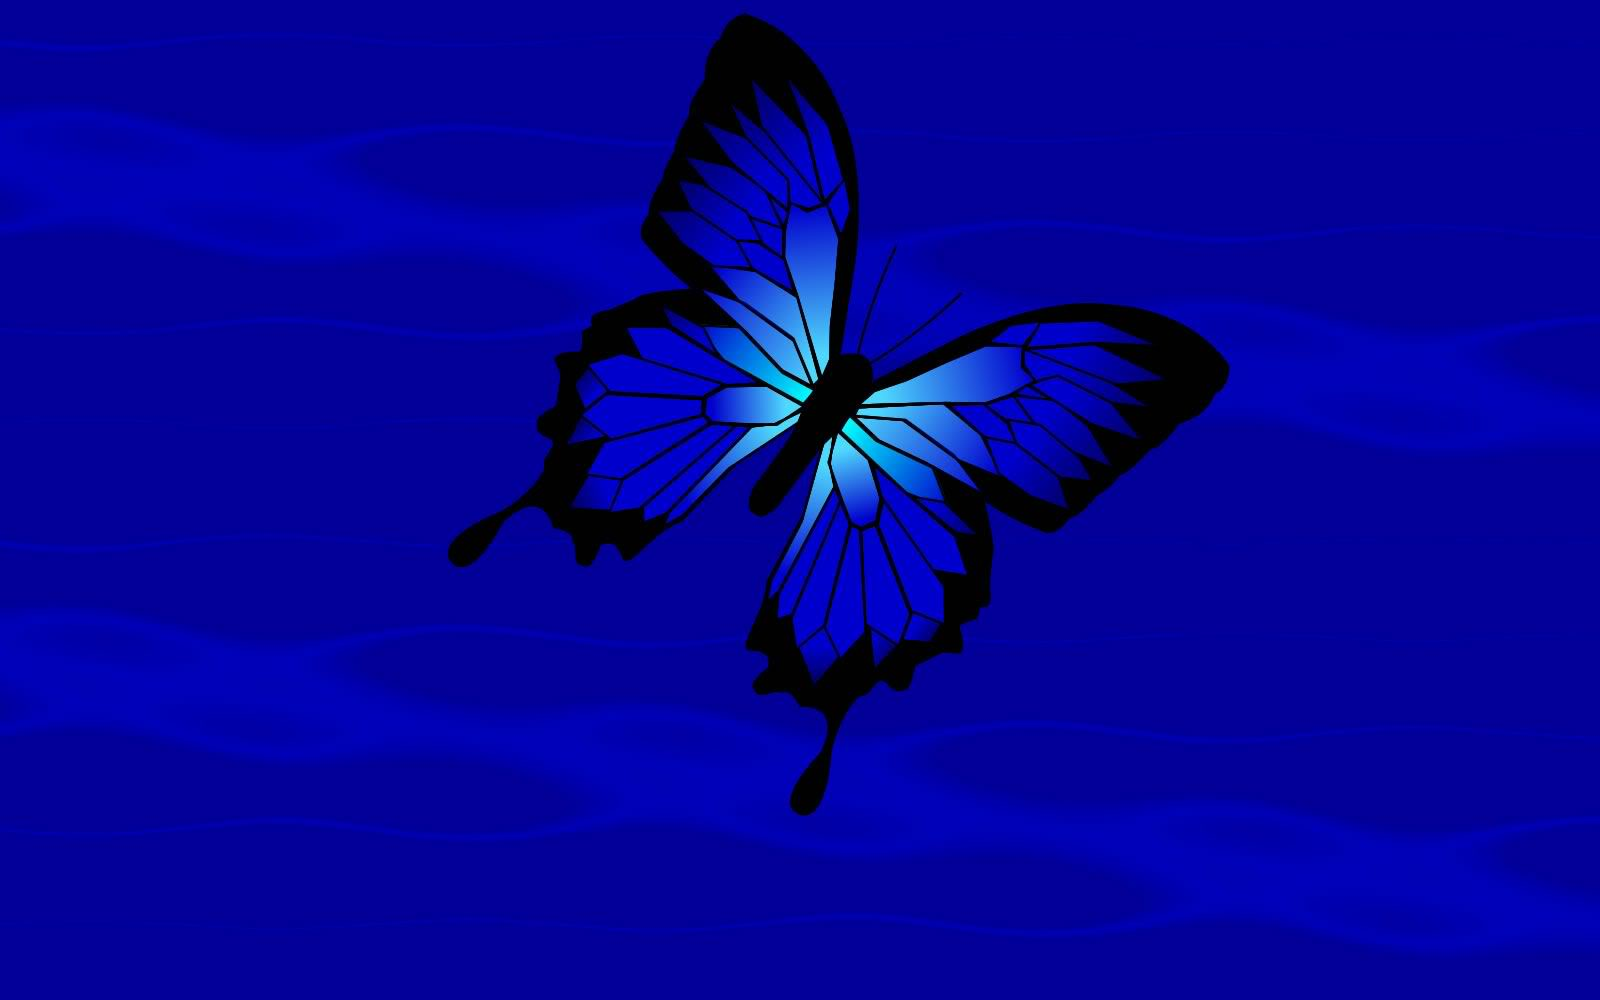 Blue Butterfly Wallpaper 9353 Hd Wallpapers in Cute   Imagescicom 1600x1000